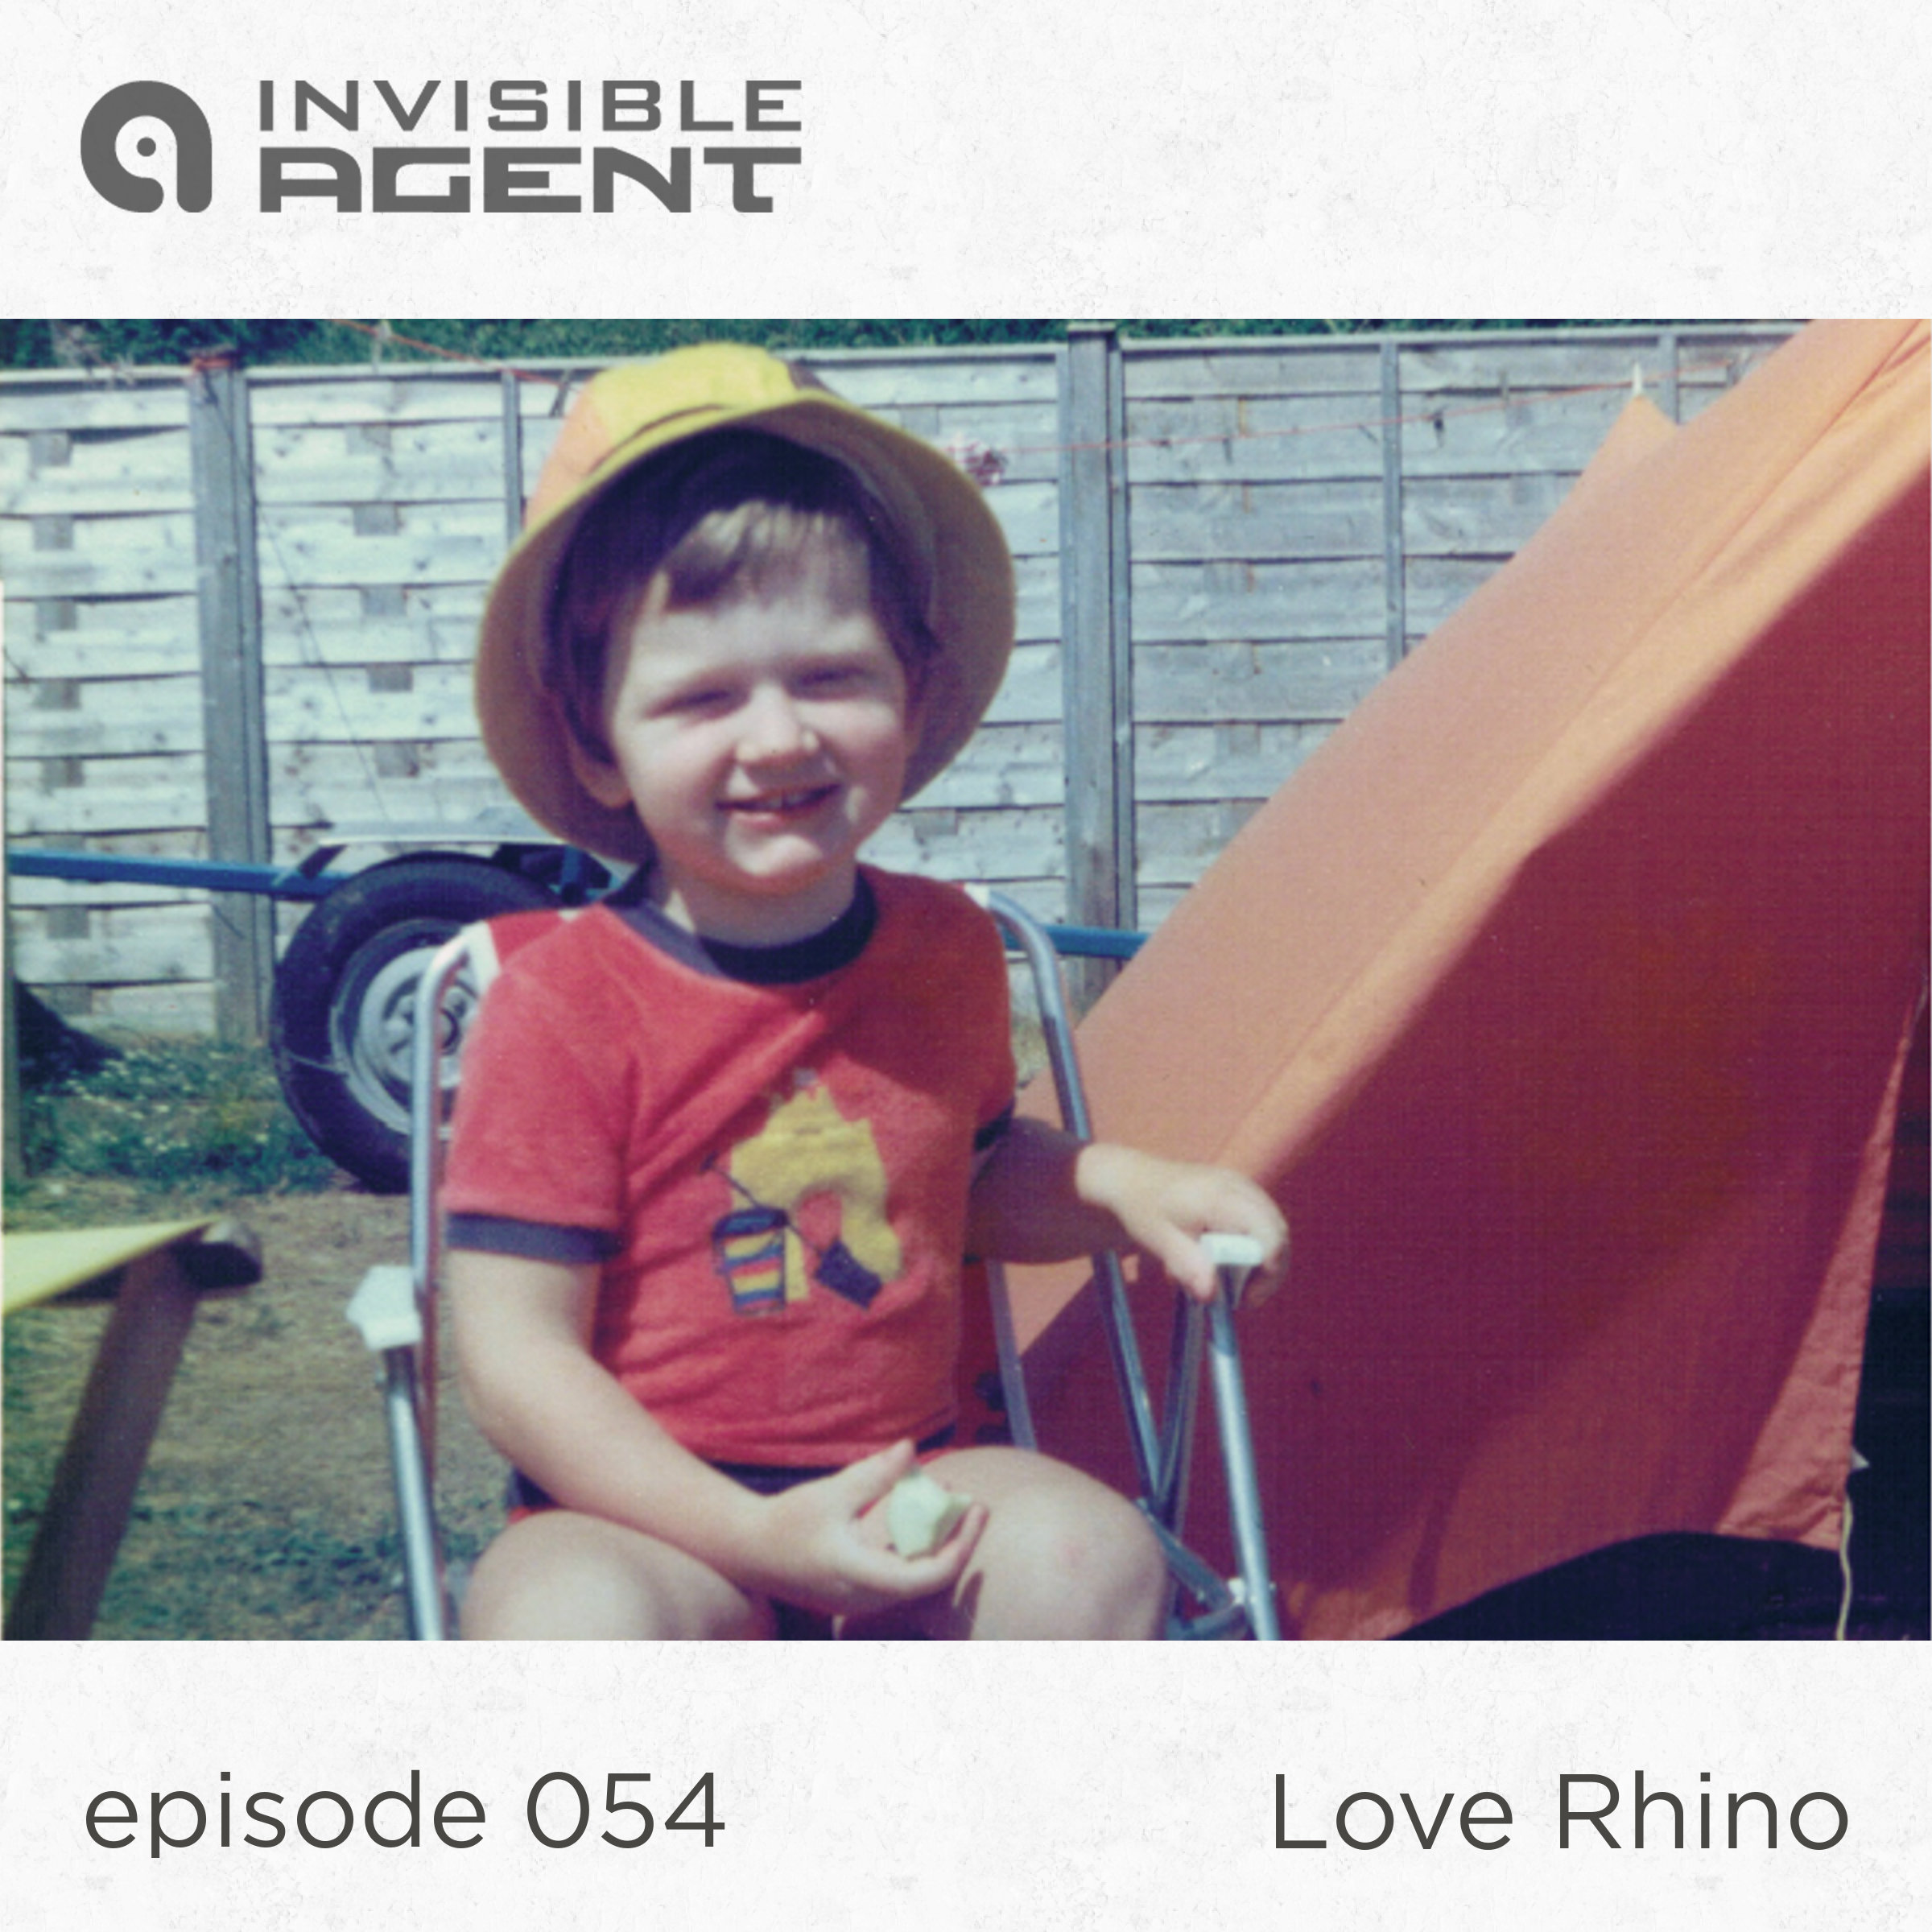 Love Rhino When They We Were Young Agentcast Episode